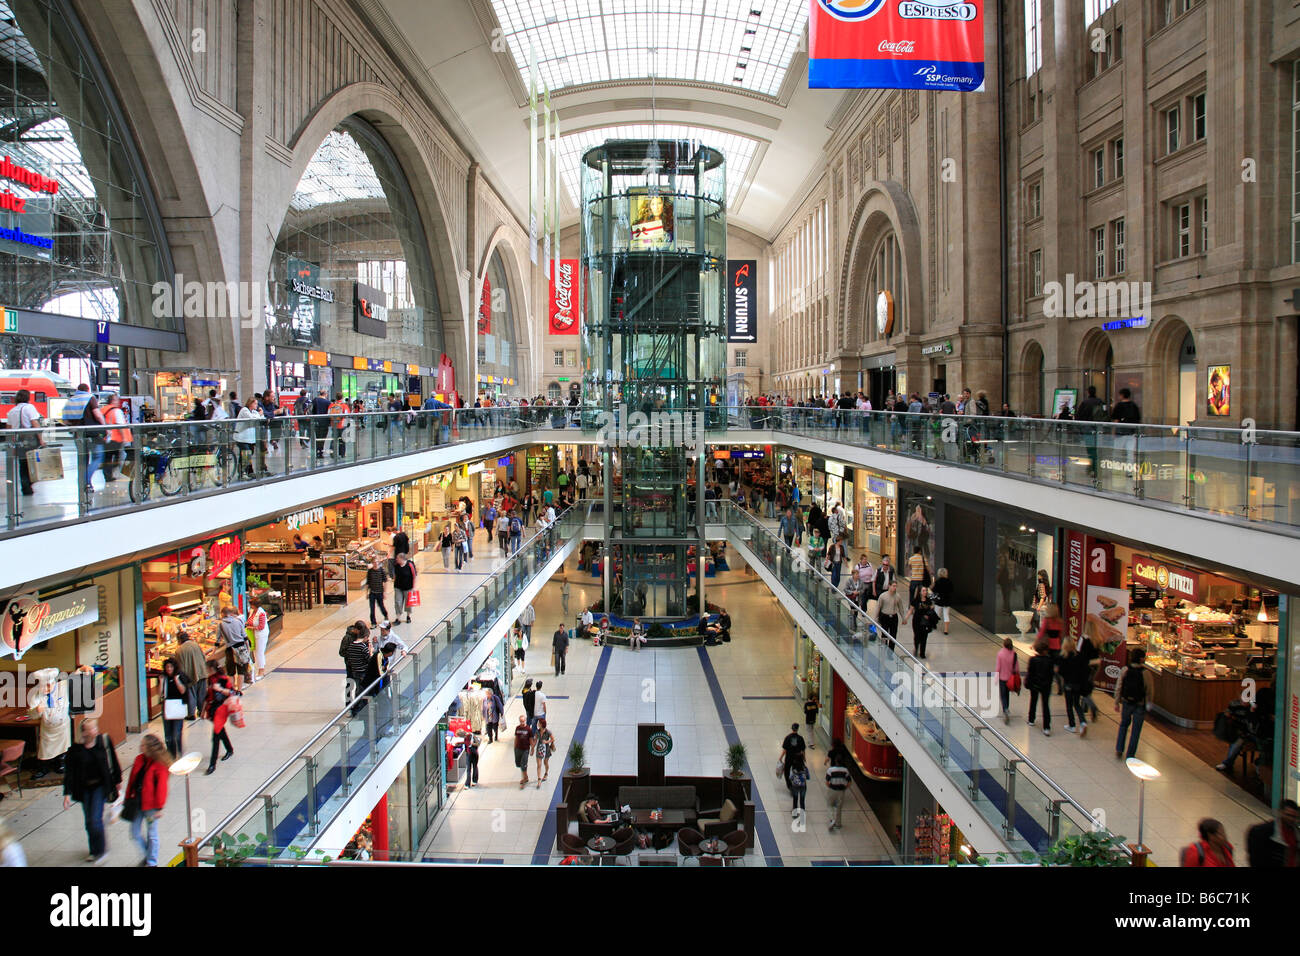 shopping mile so called promenaden in the central station of leipzig stock photo royalty free. Black Bedroom Furniture Sets. Home Design Ideas